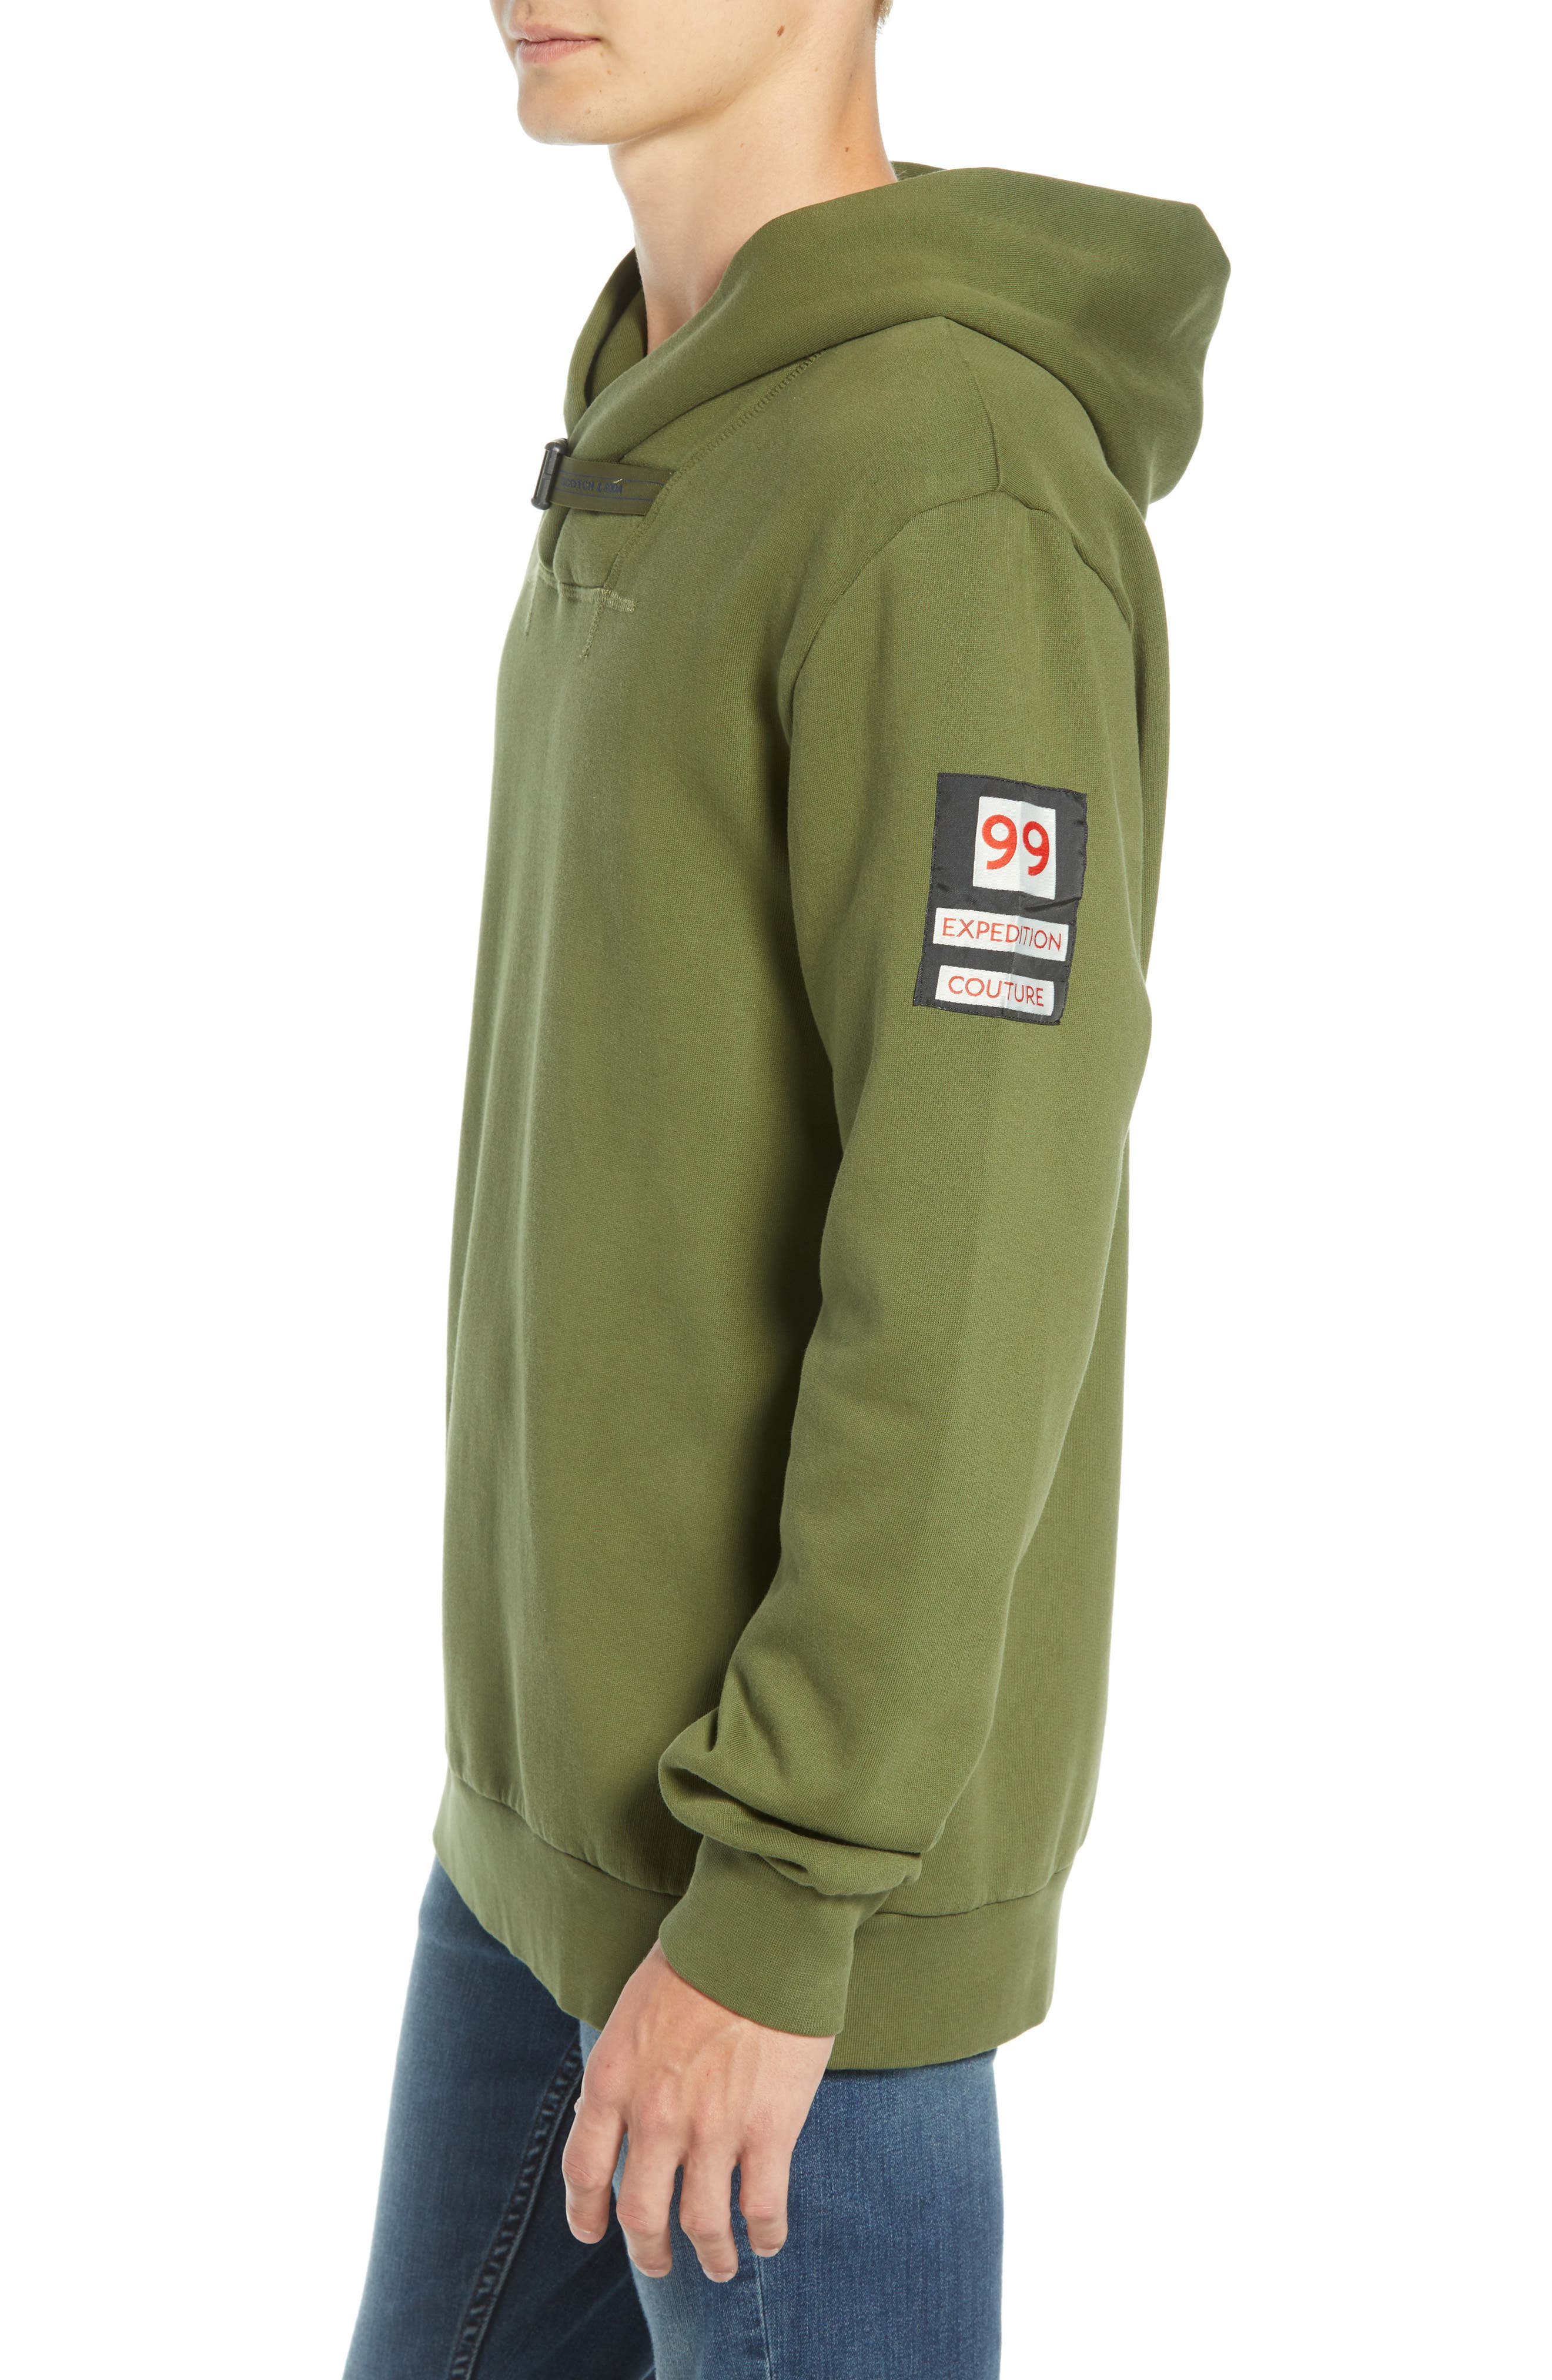 SCOTCH & SODA,                             Explorer Clip Buckle Hooded Pullover,                             Alternate thumbnail 3, color,                             COMBO C